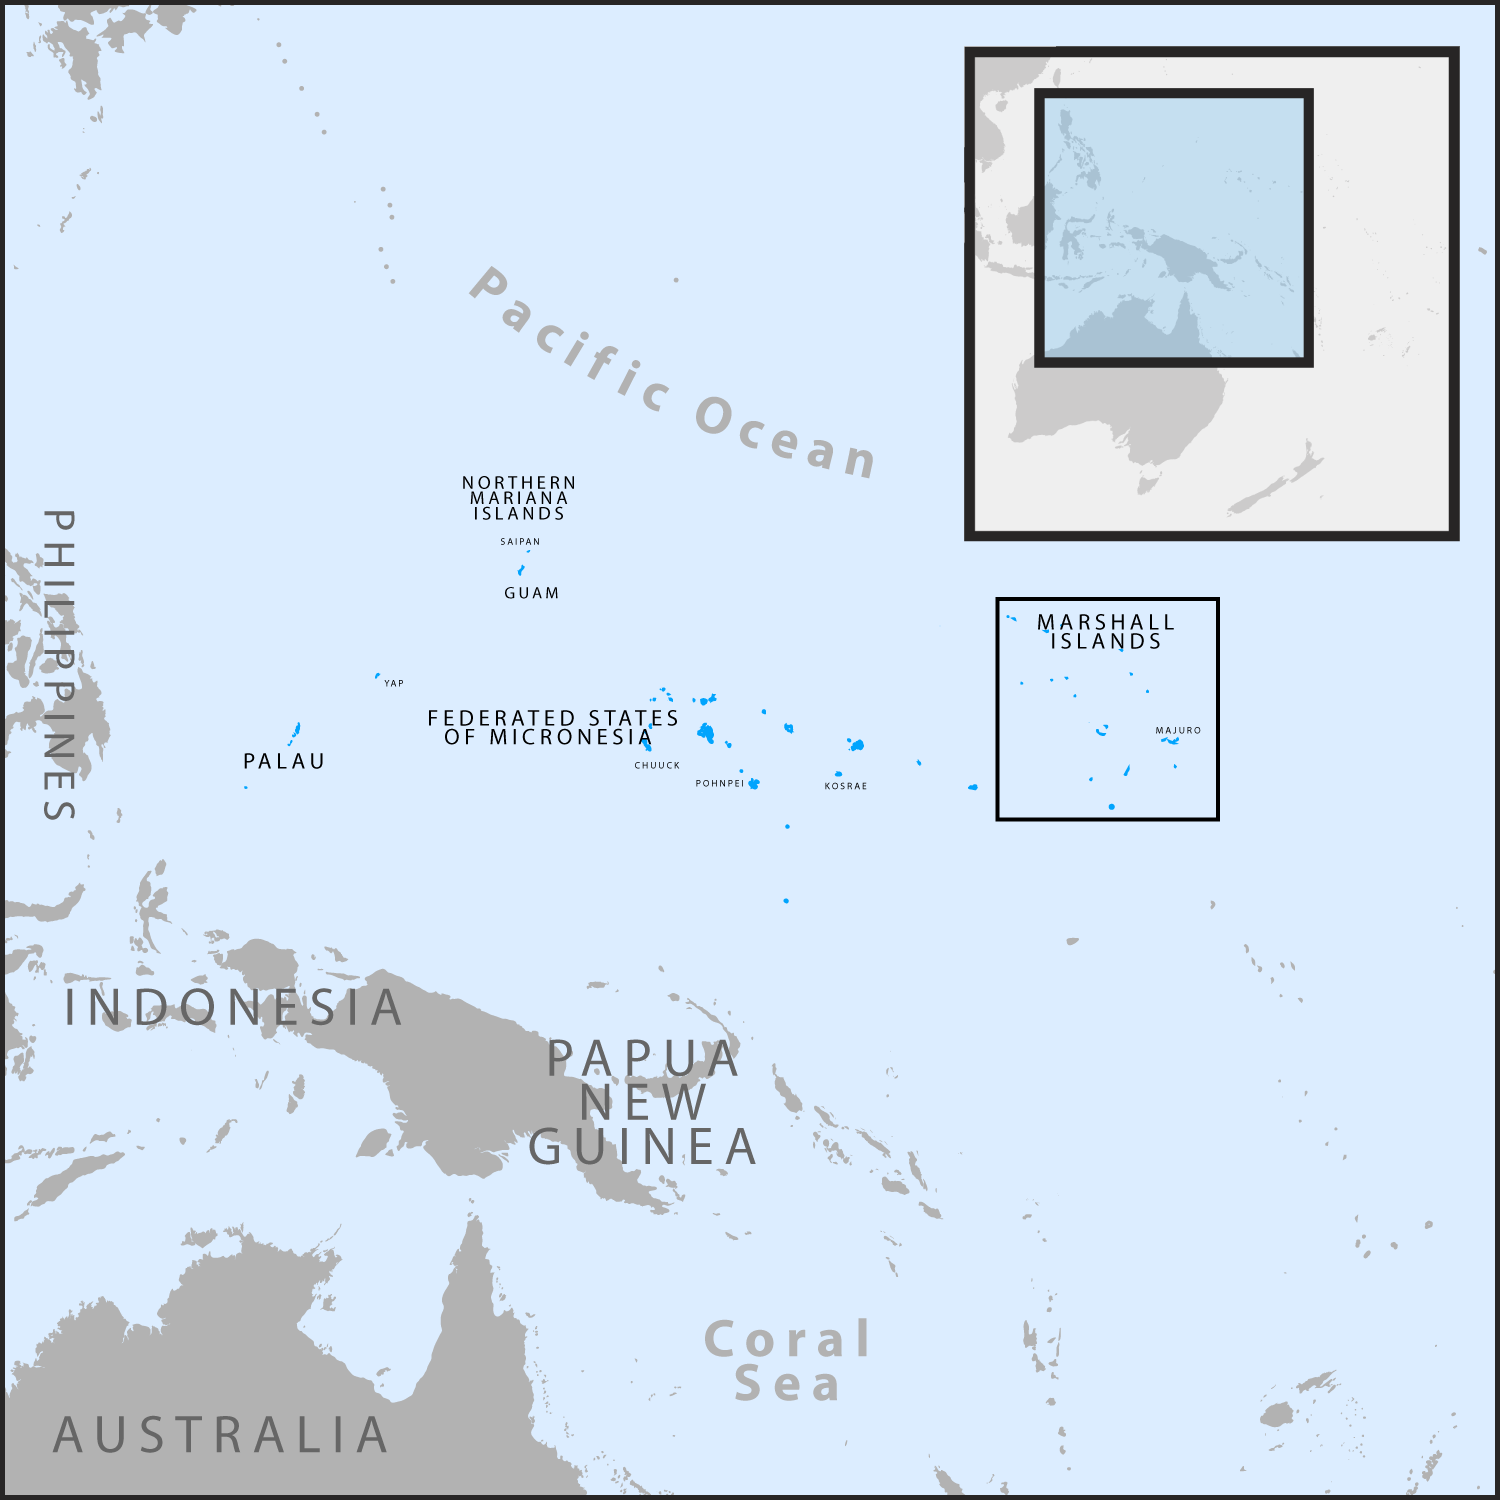 Map of the Republic of the Marshall Islands